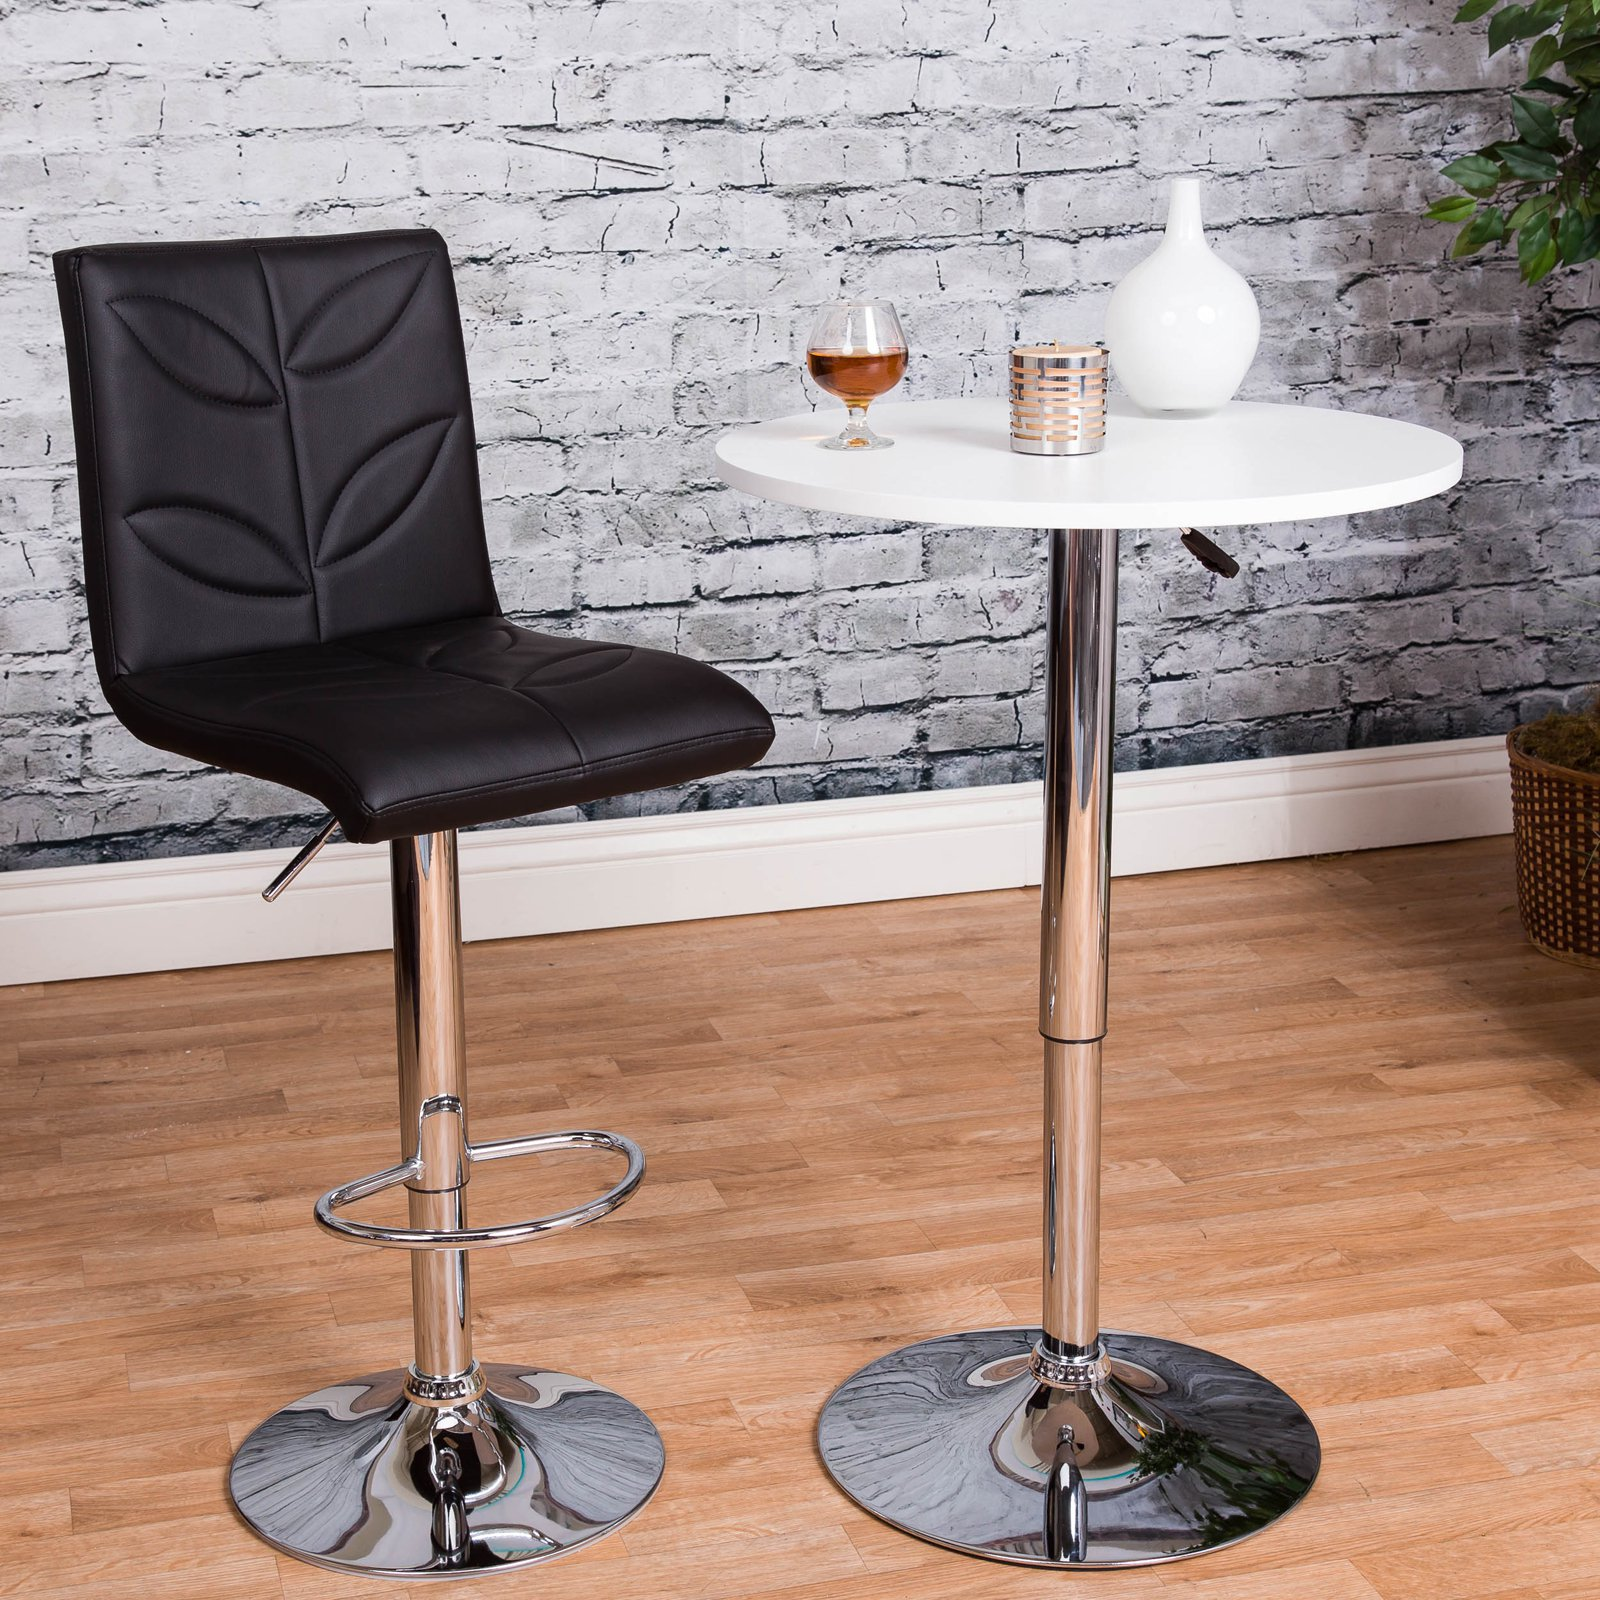 Vogue Furniture Direct Adjustable Height Black Leather with leaf stitching Swivel Barstools with Footrest VF1581003